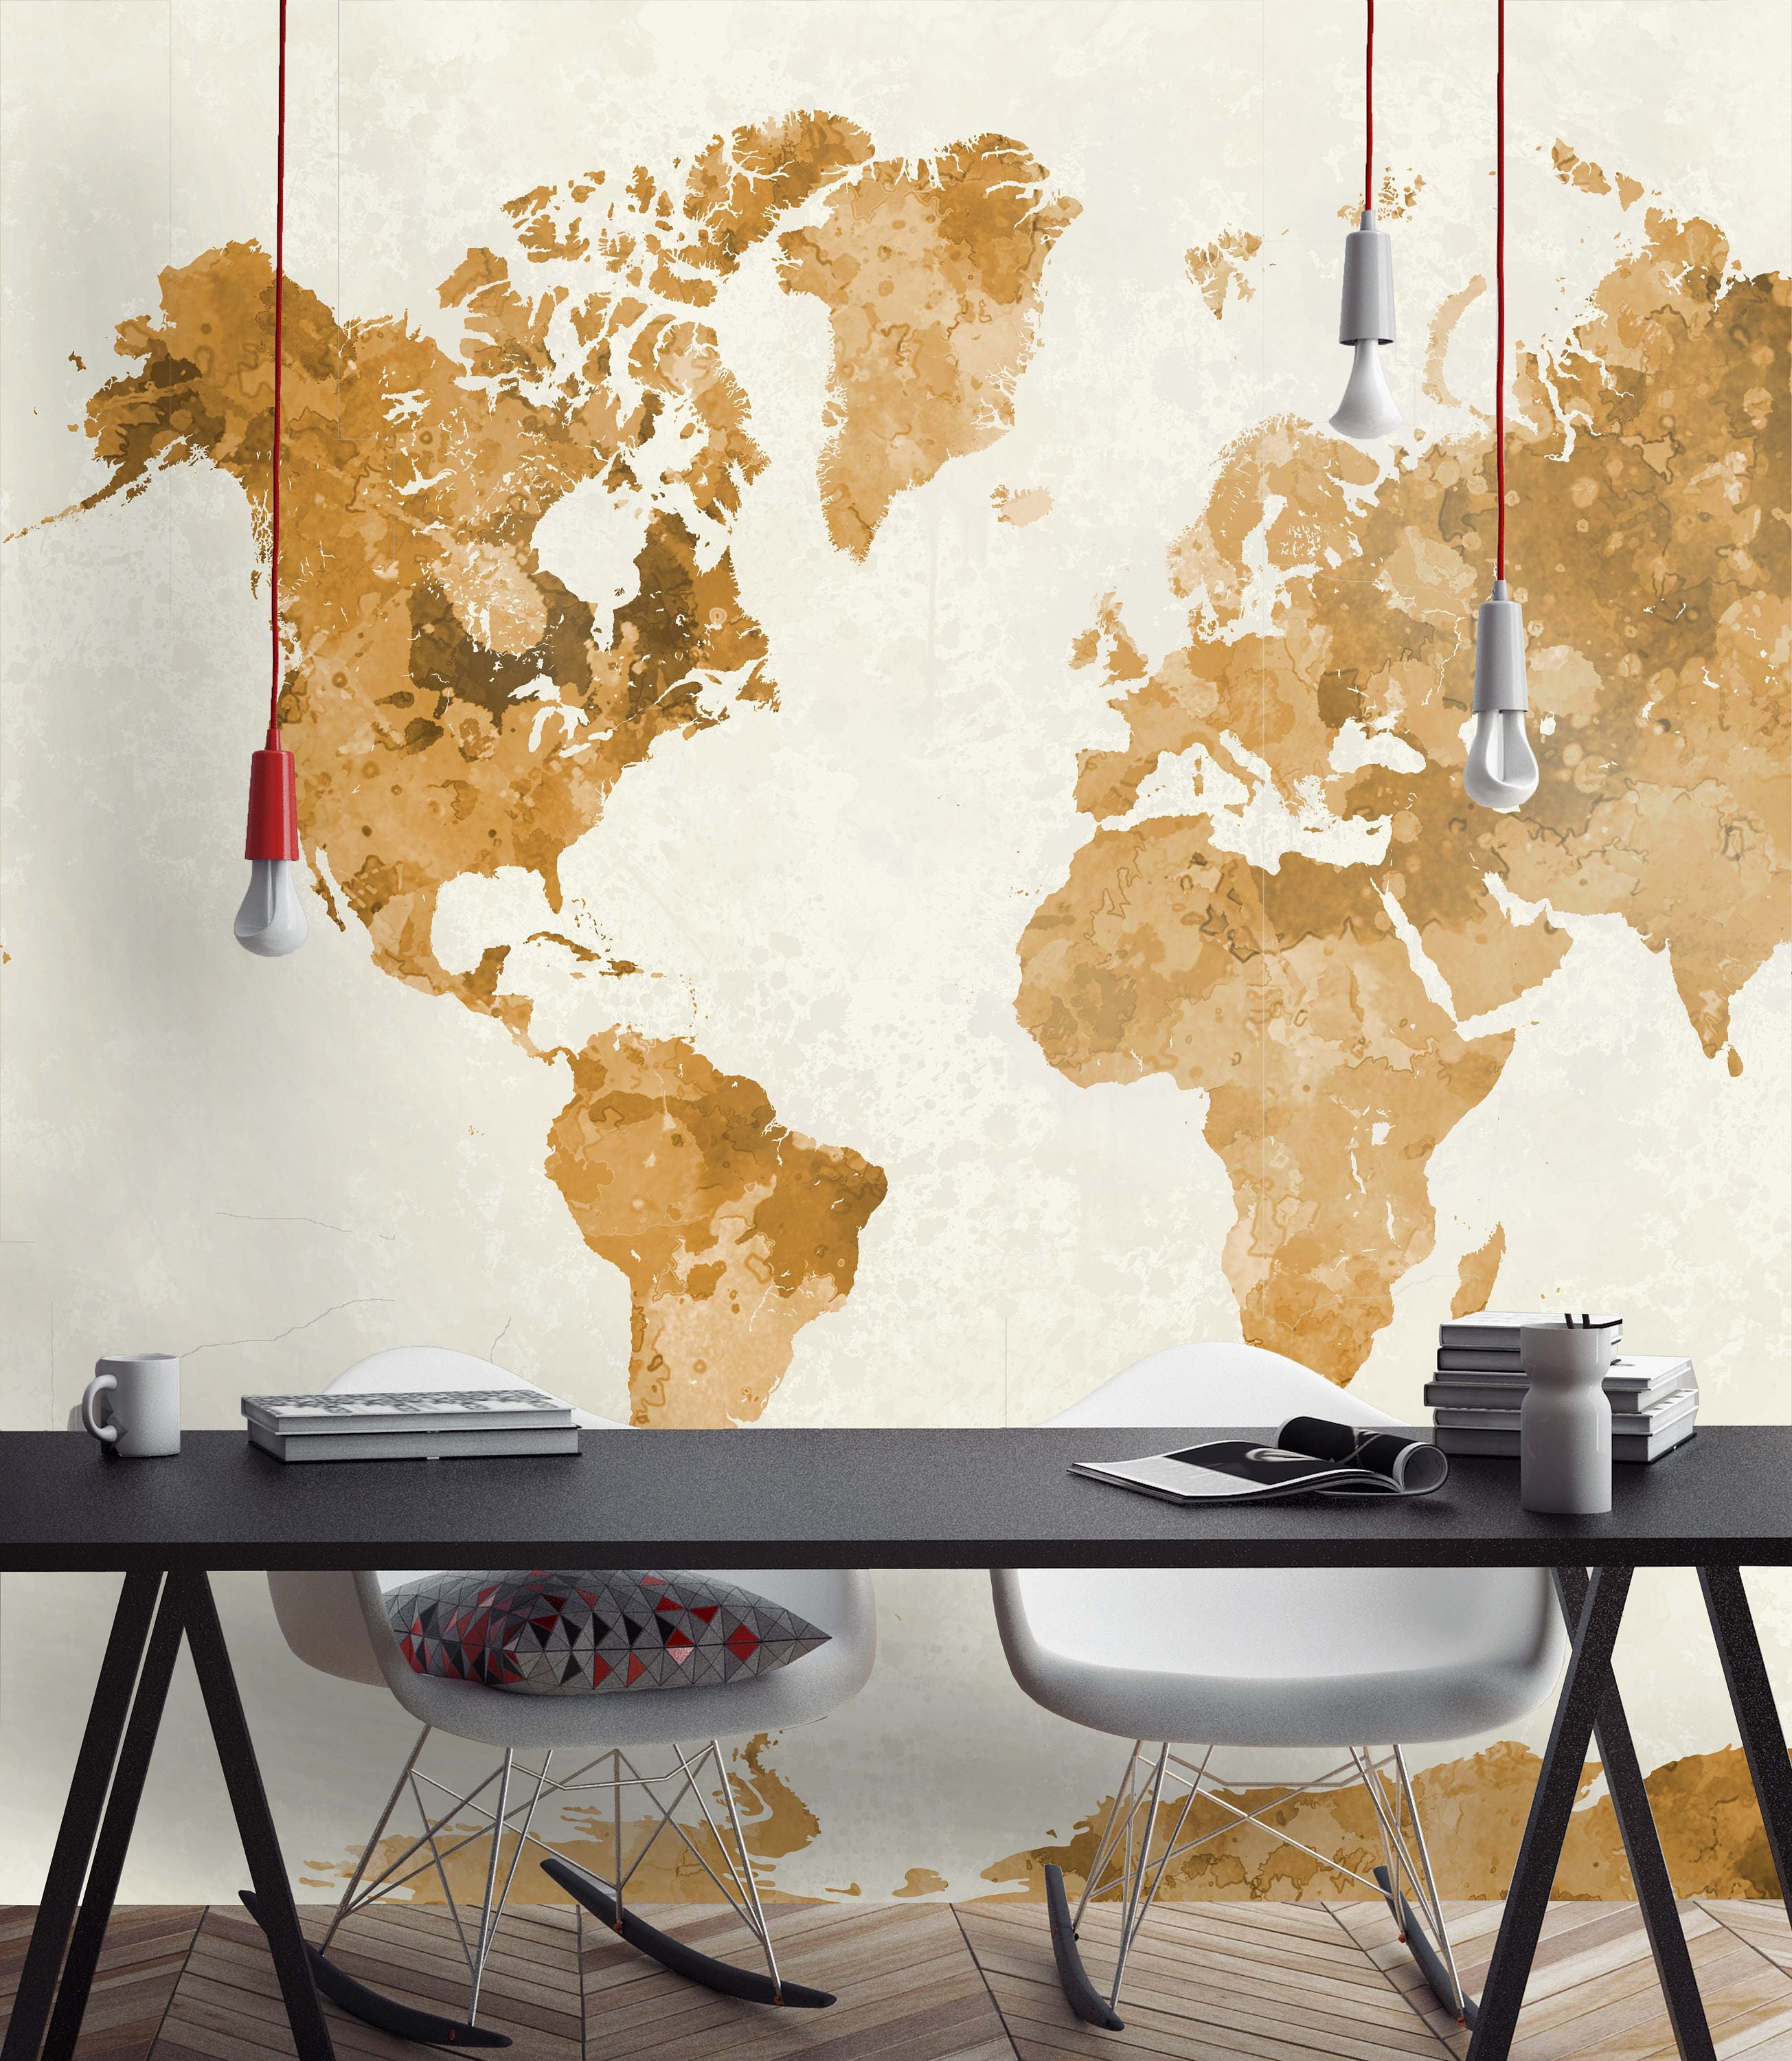 World map wallpaper planisphere wallpaper vintage map map old world map wallpaper planisphere wallpaper vintage map map old map antique map world vintage globe custom globe world globe gumiabroncs Image collections